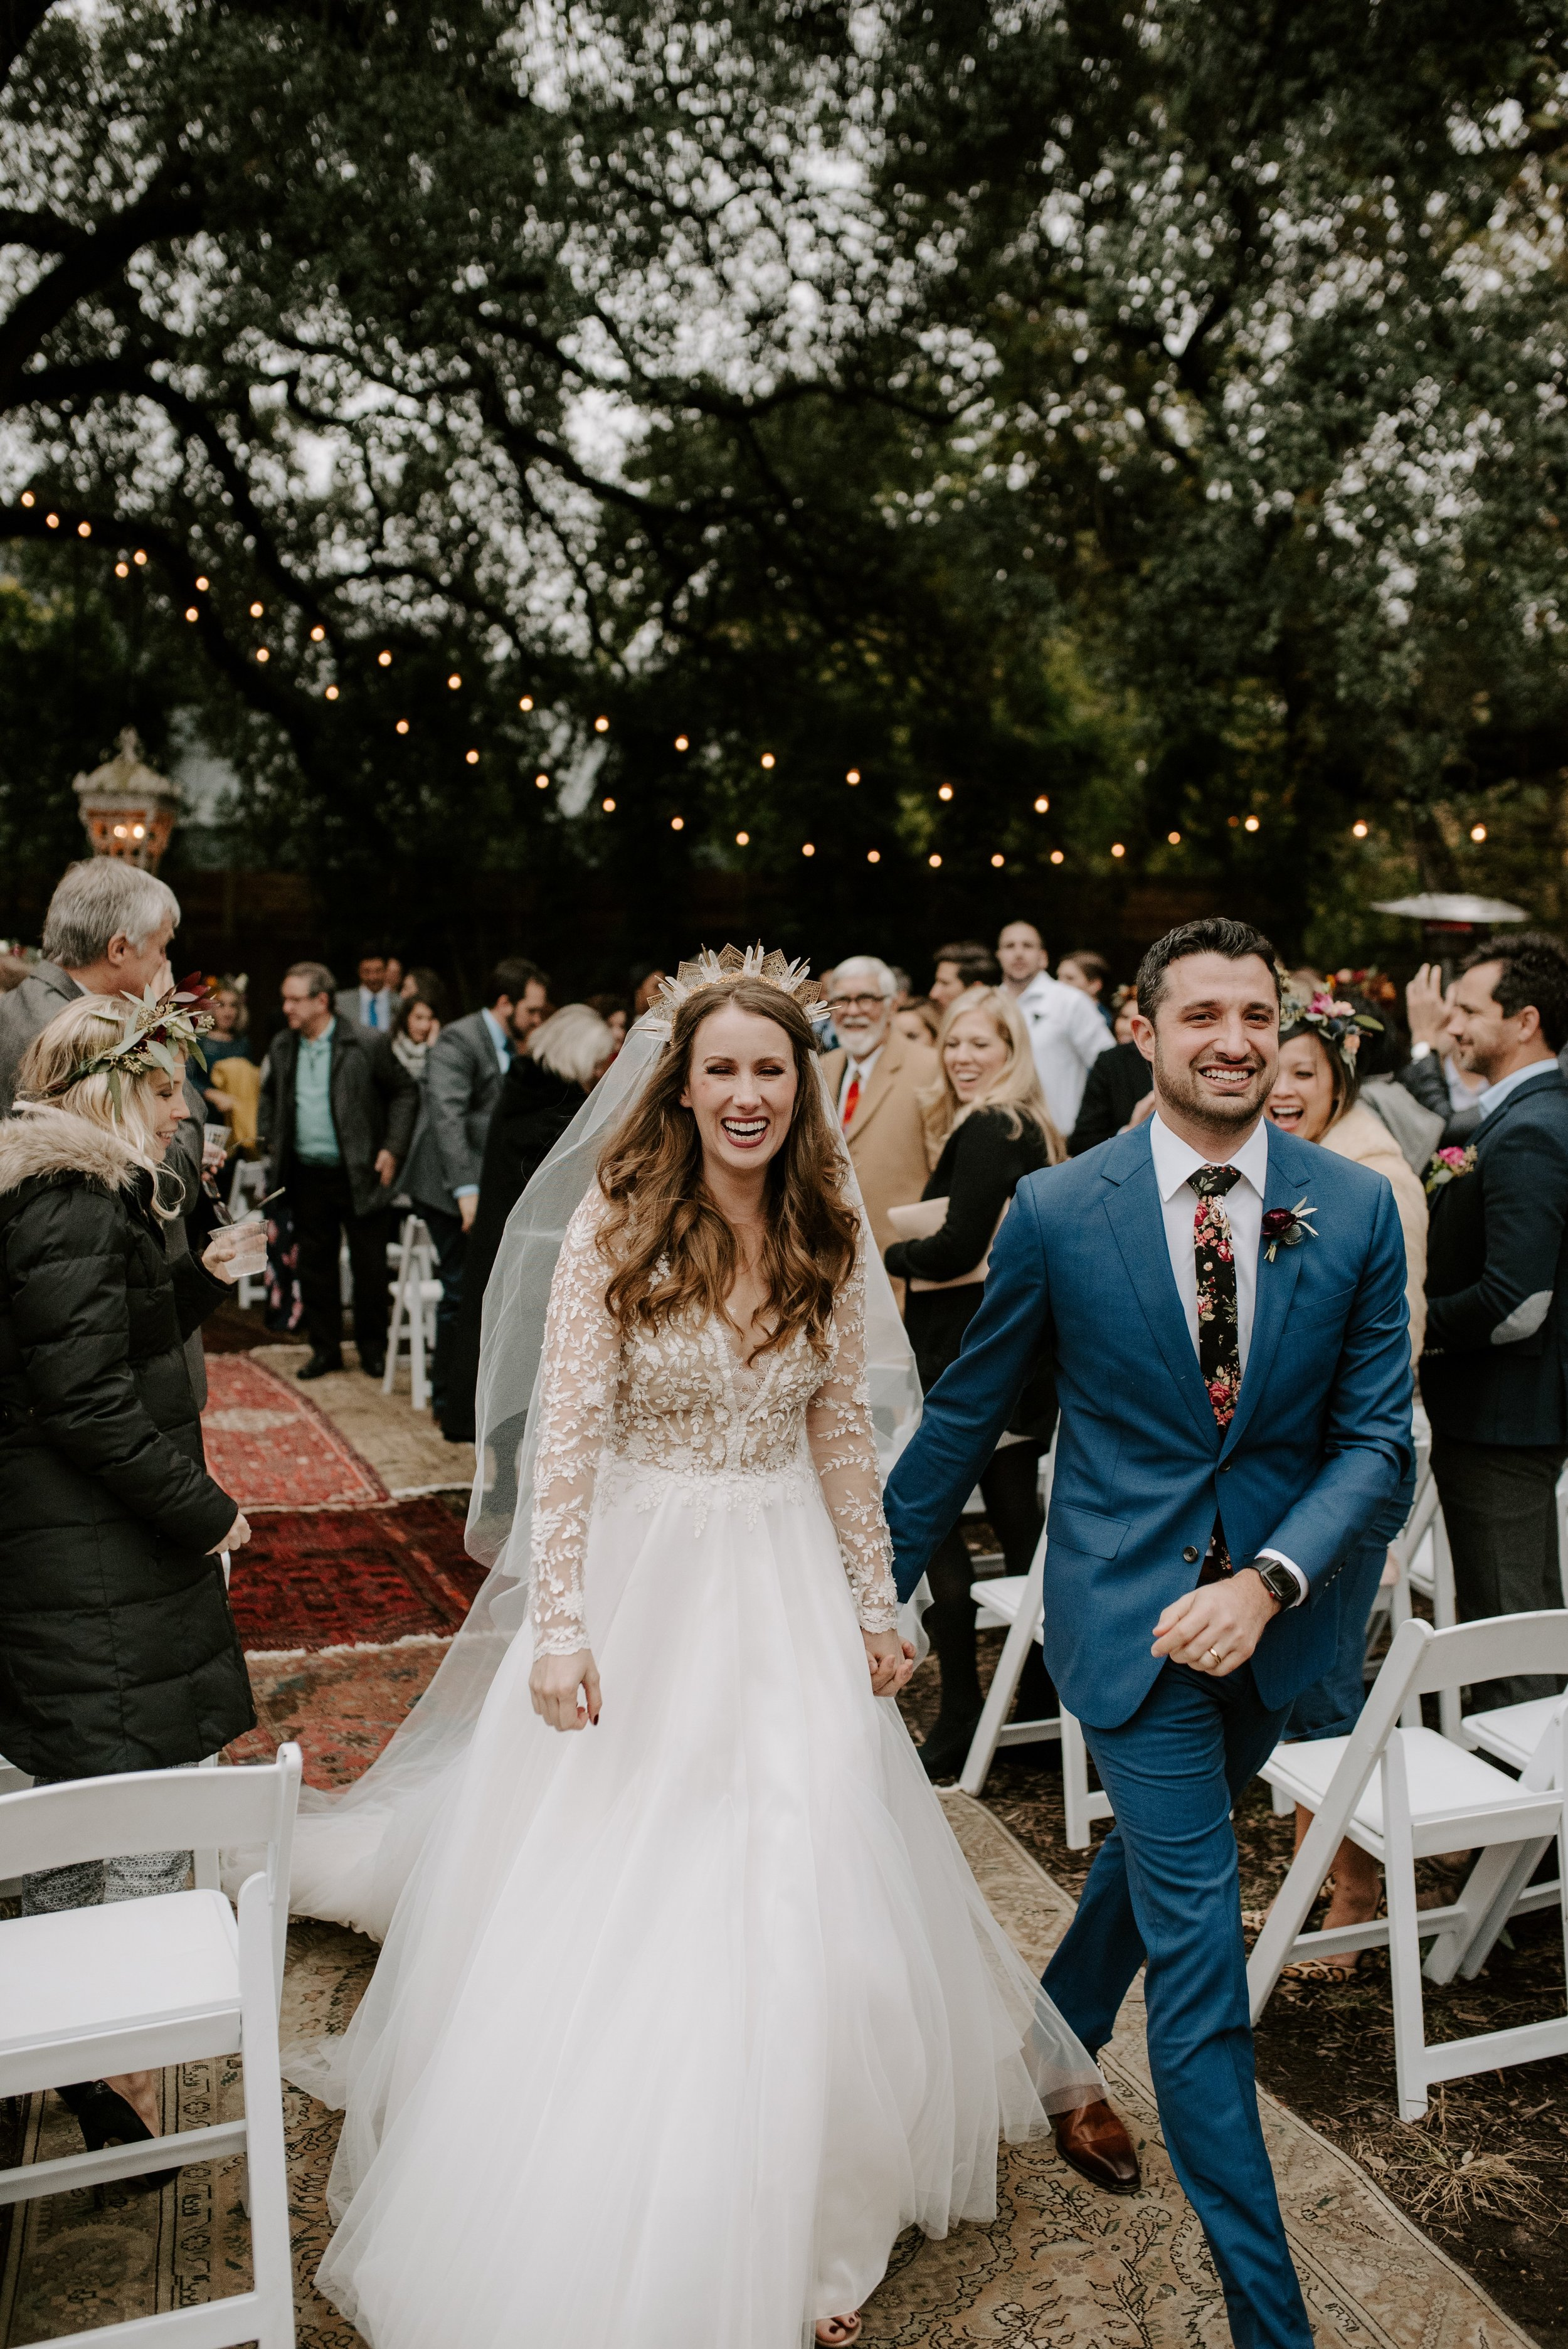 Modern Backyard Wedding at Vuka Collective in Austin, TX // Candice and Aaron - Wedding